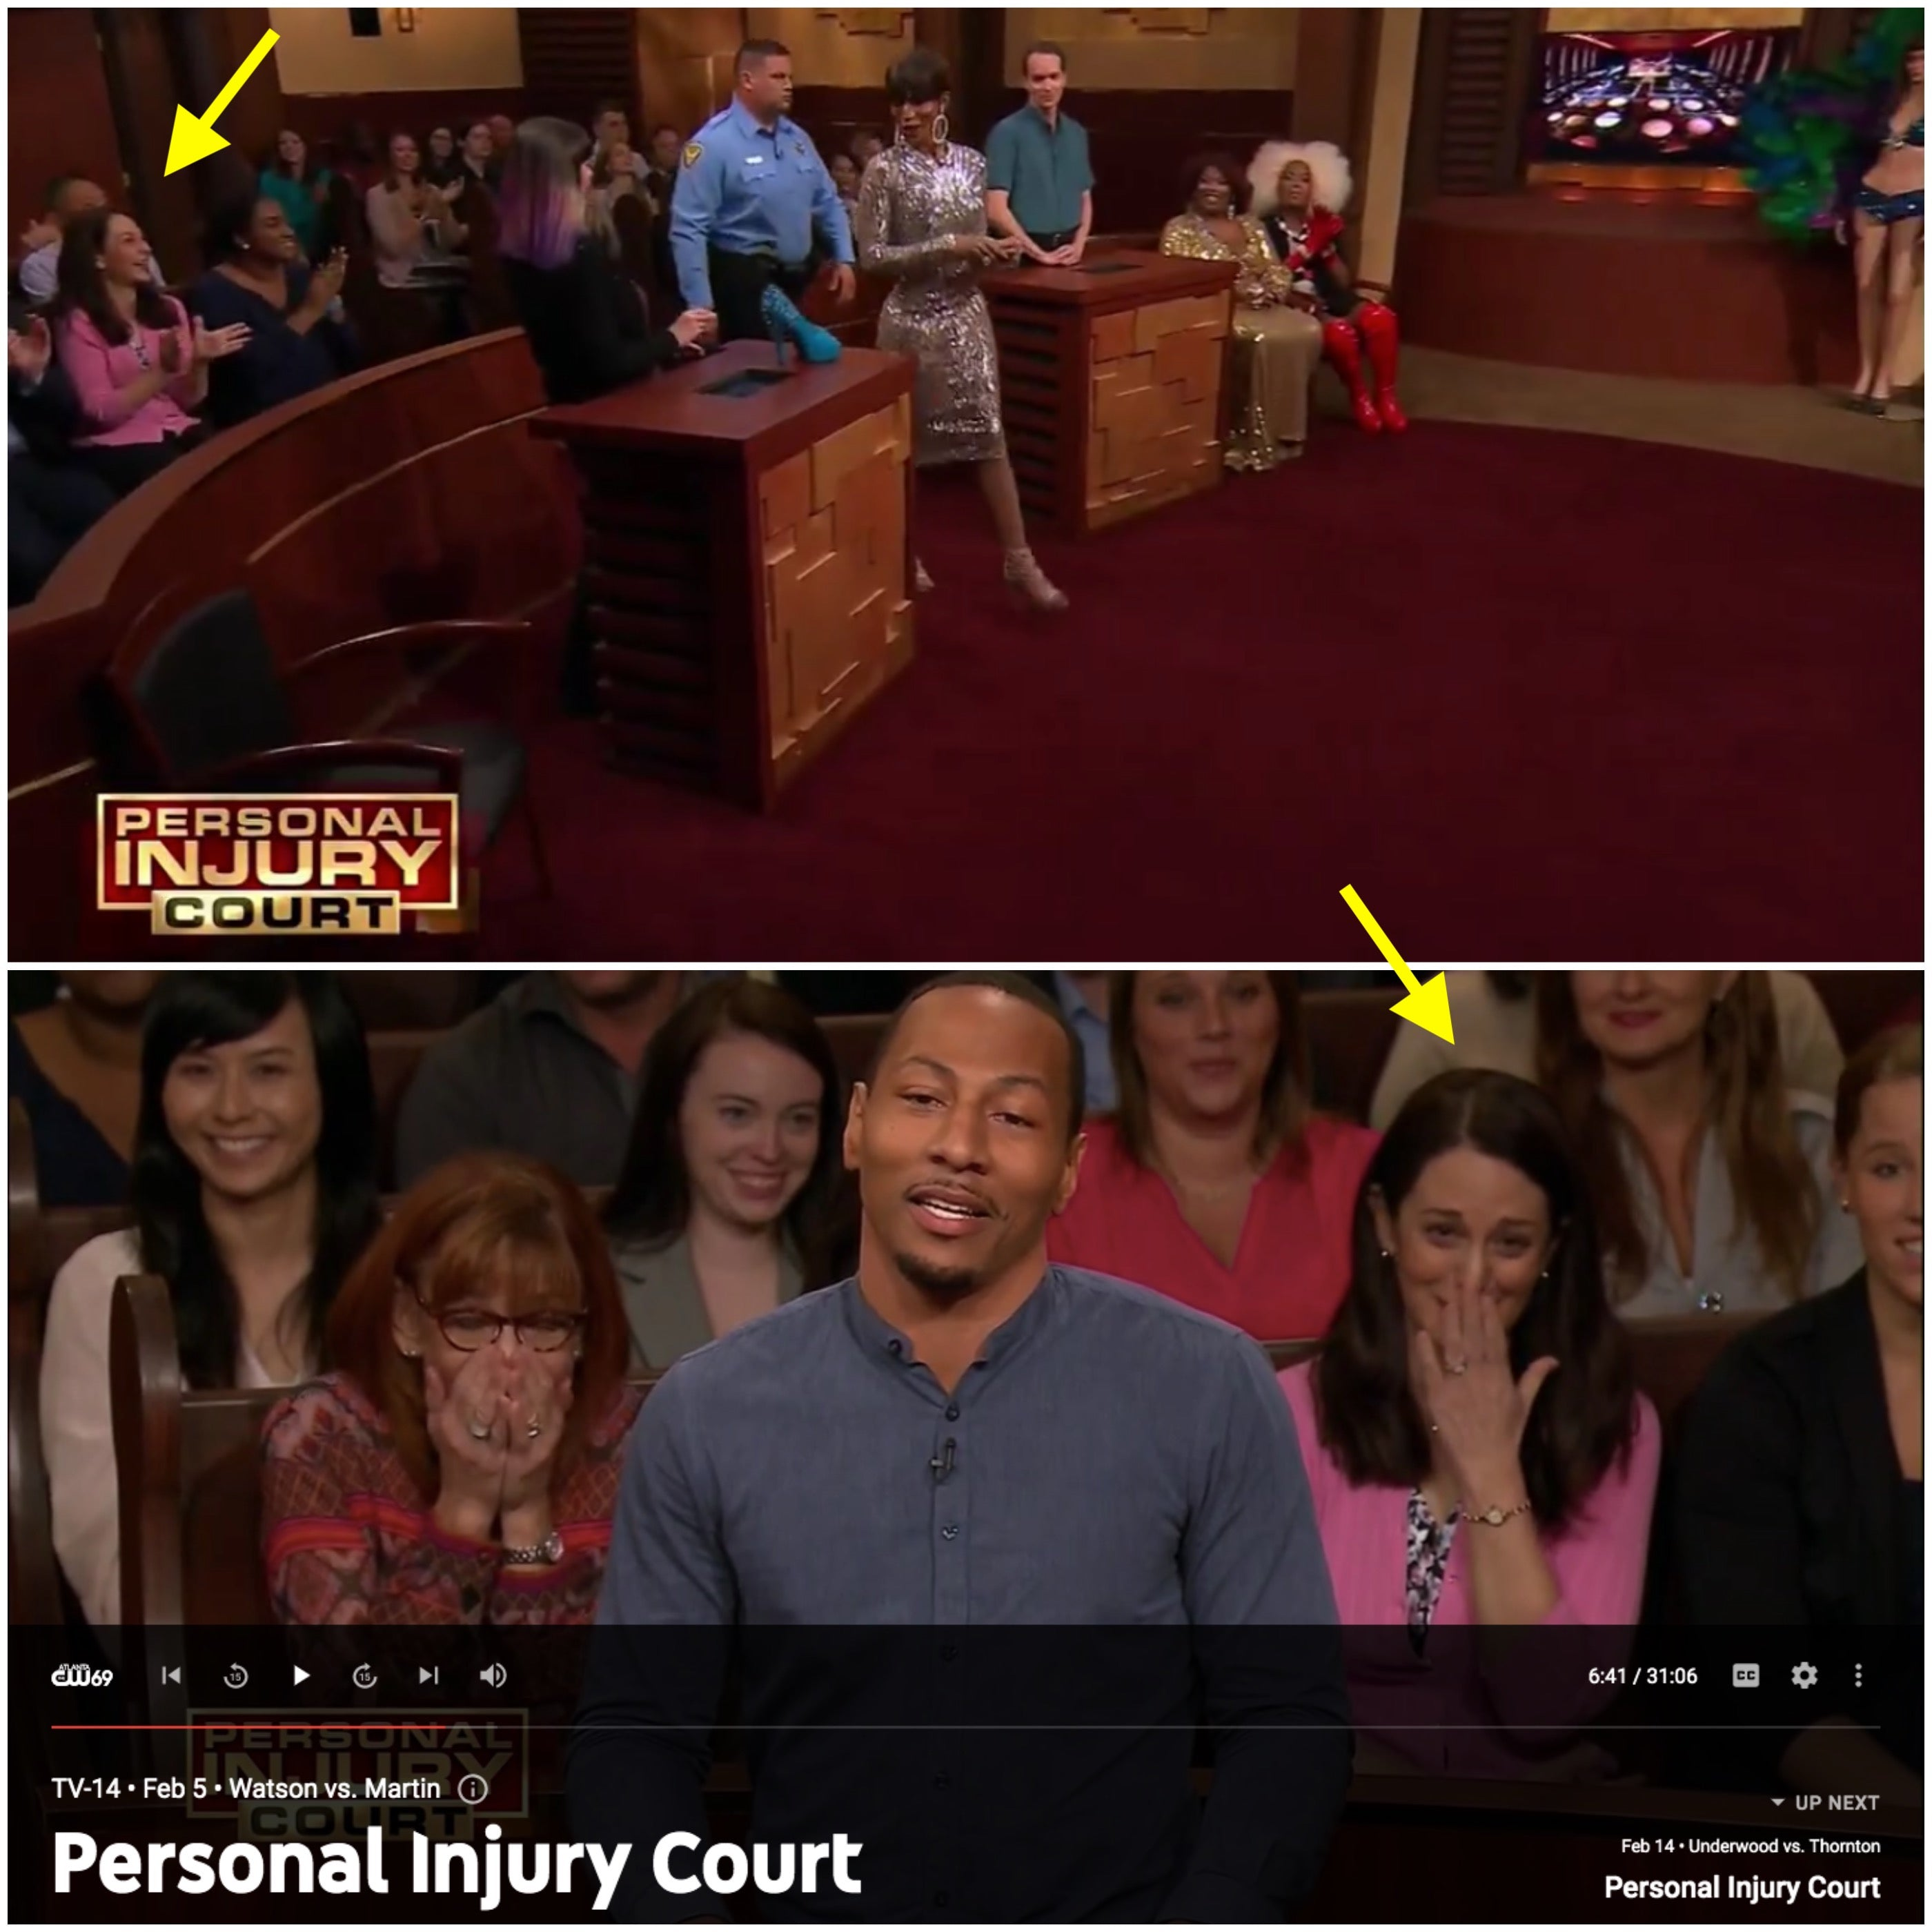 #46 - Personal Injury Court